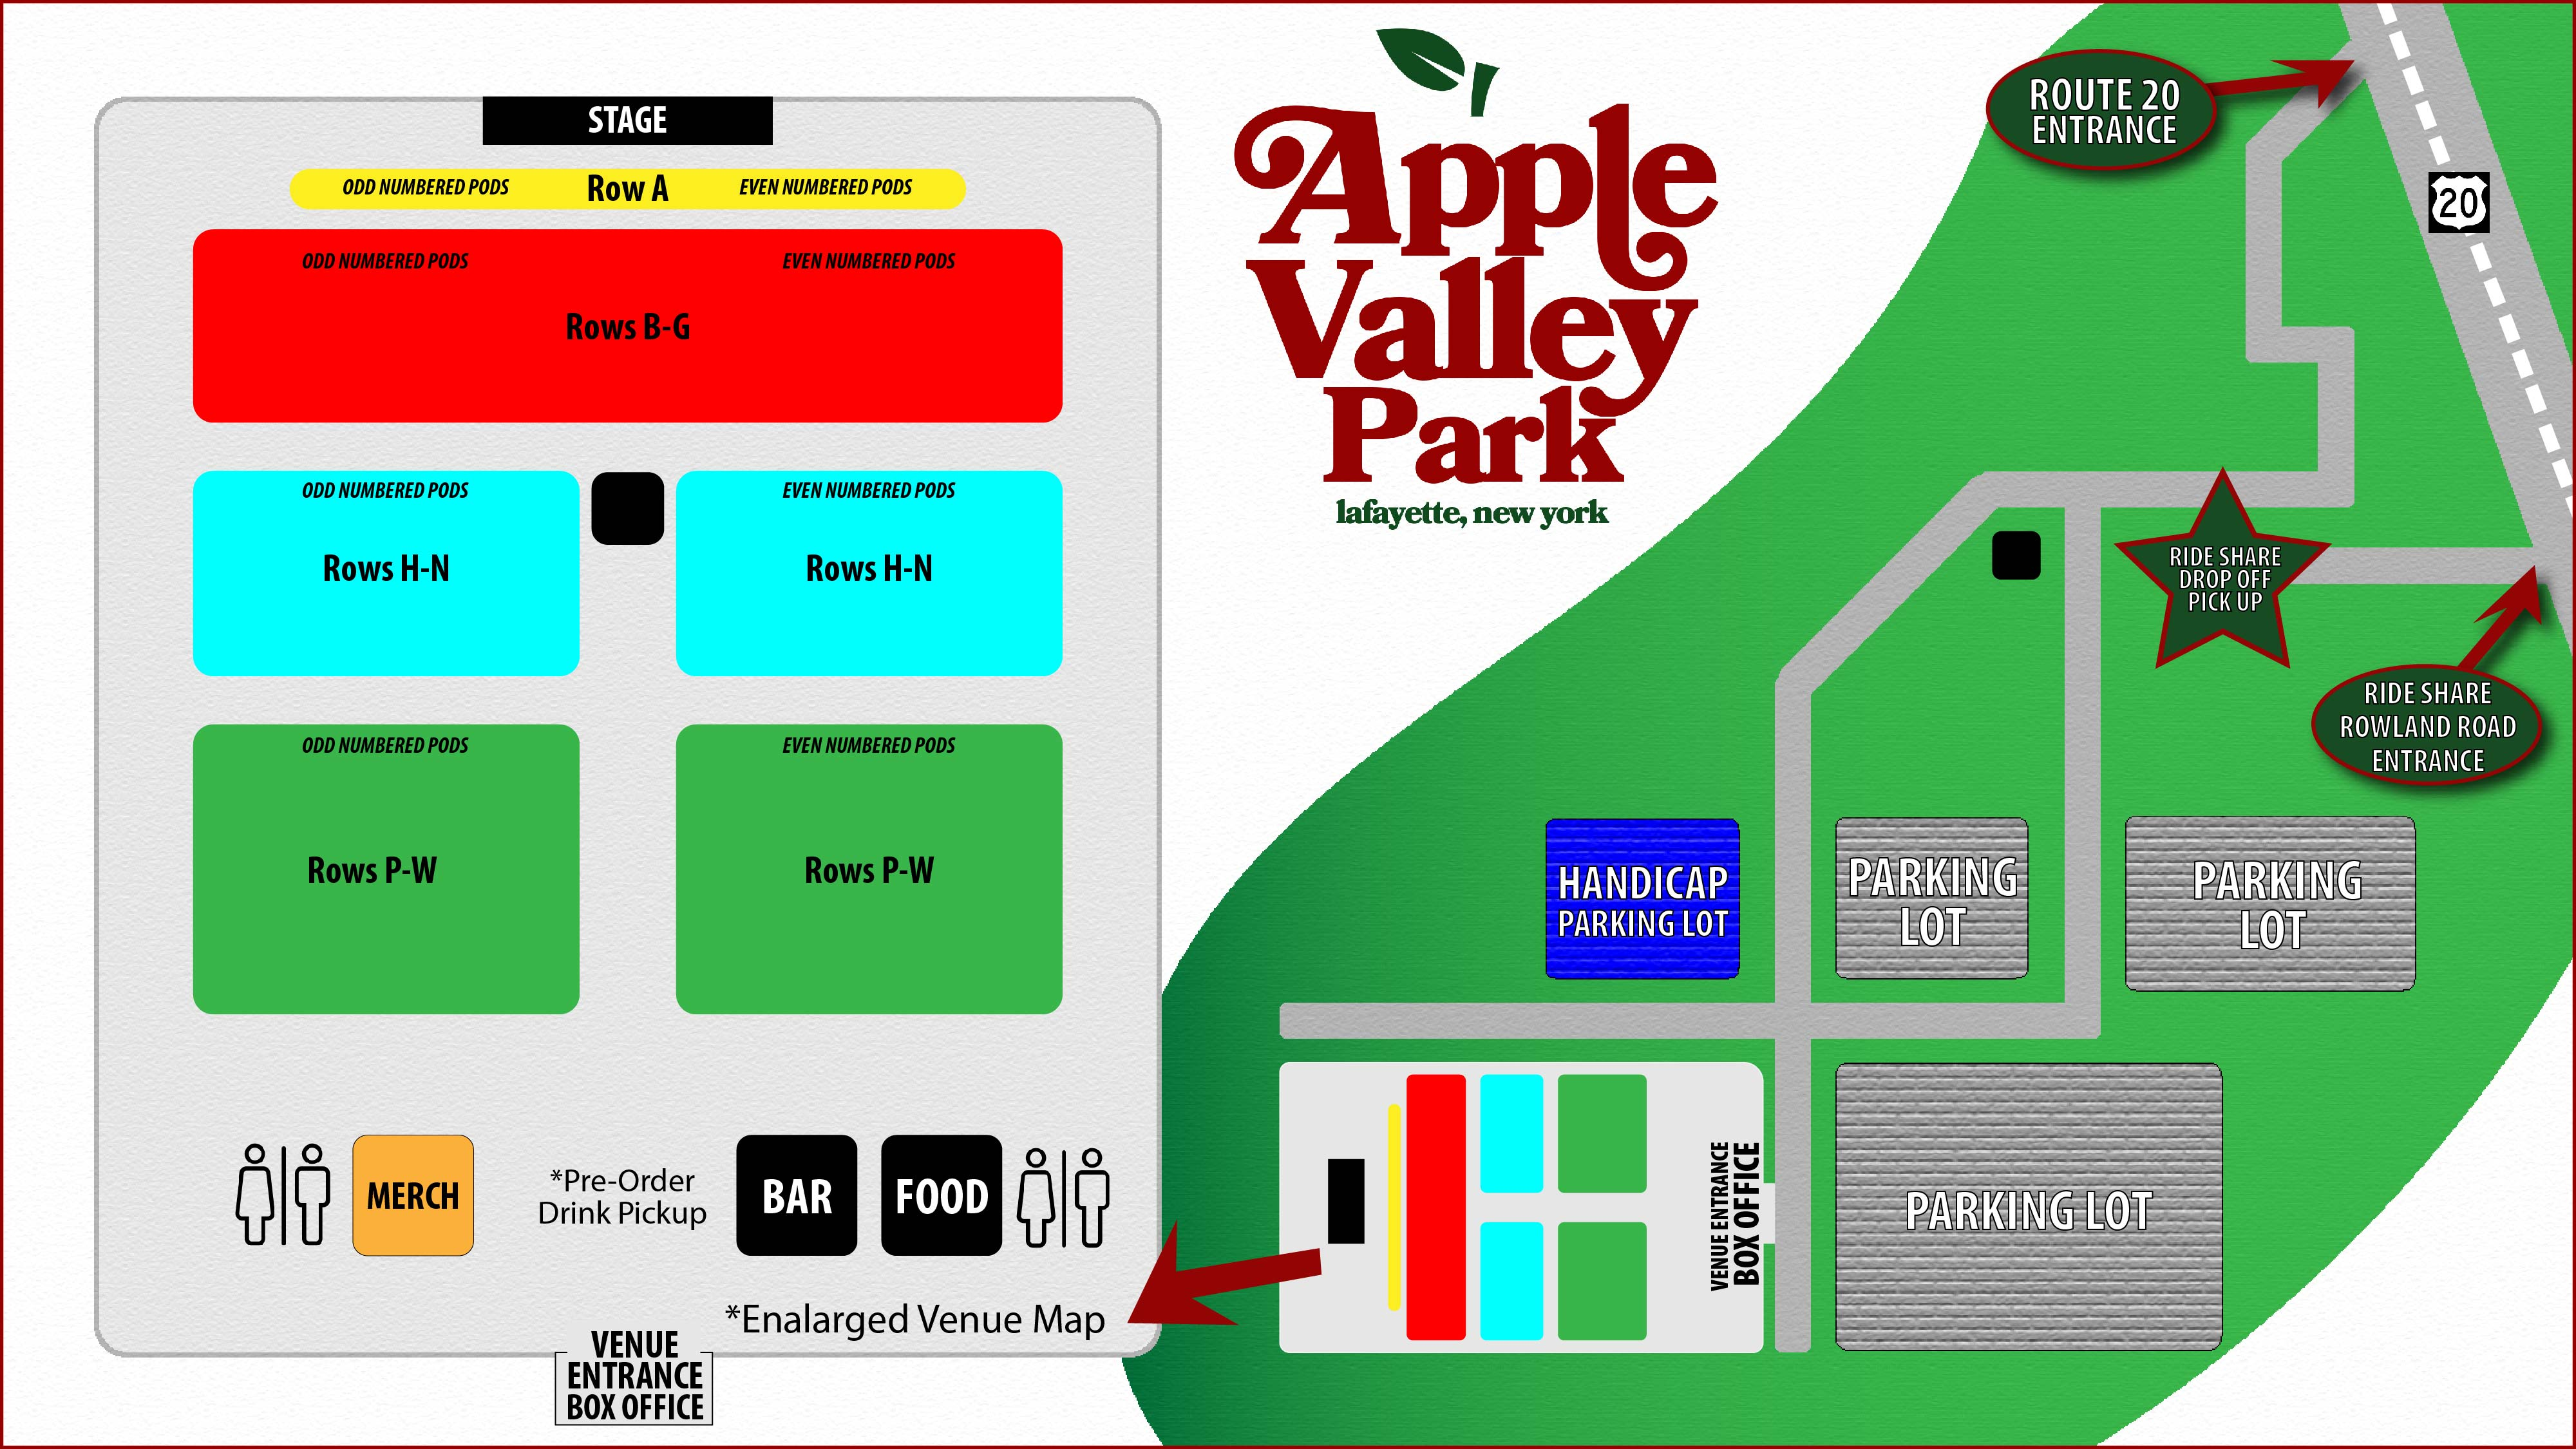 apple valley park map